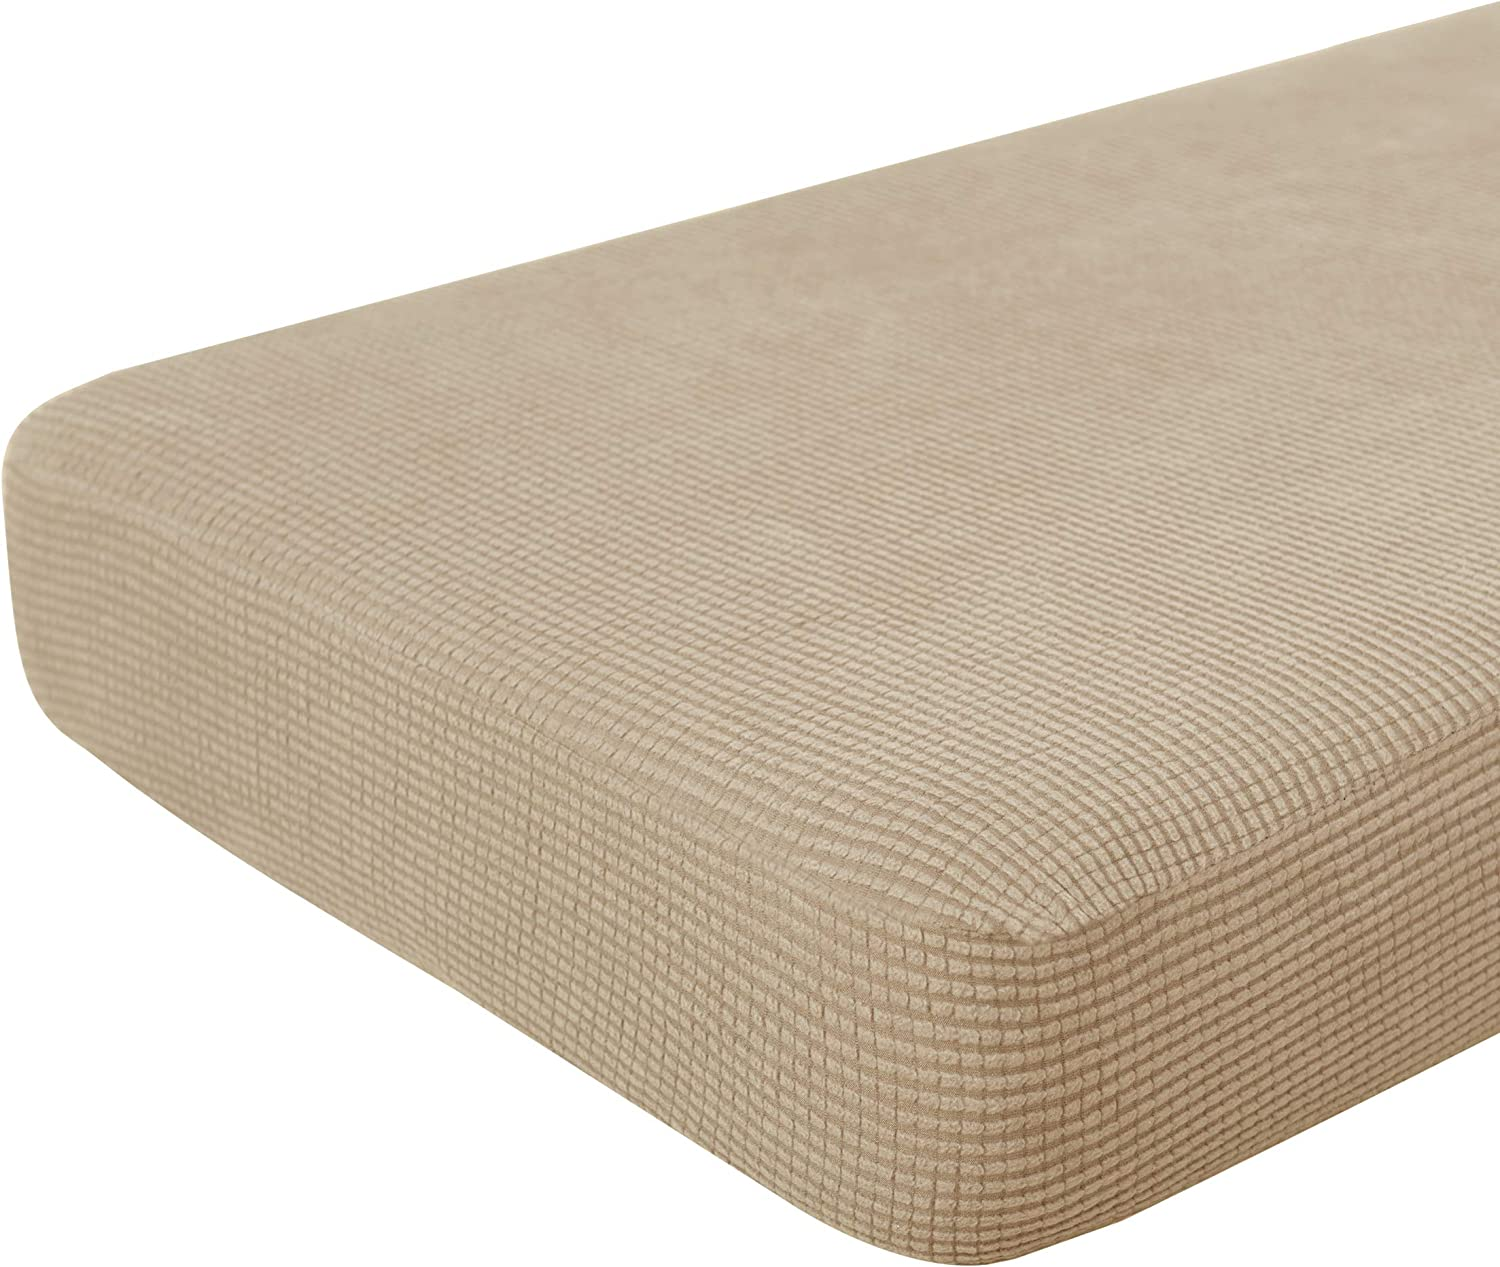 Hokway Stretch Couch Cushion Replacement Slipcovers Reversible Cushion Slipcovers Sofa Cushion Covers(Camel, Large)